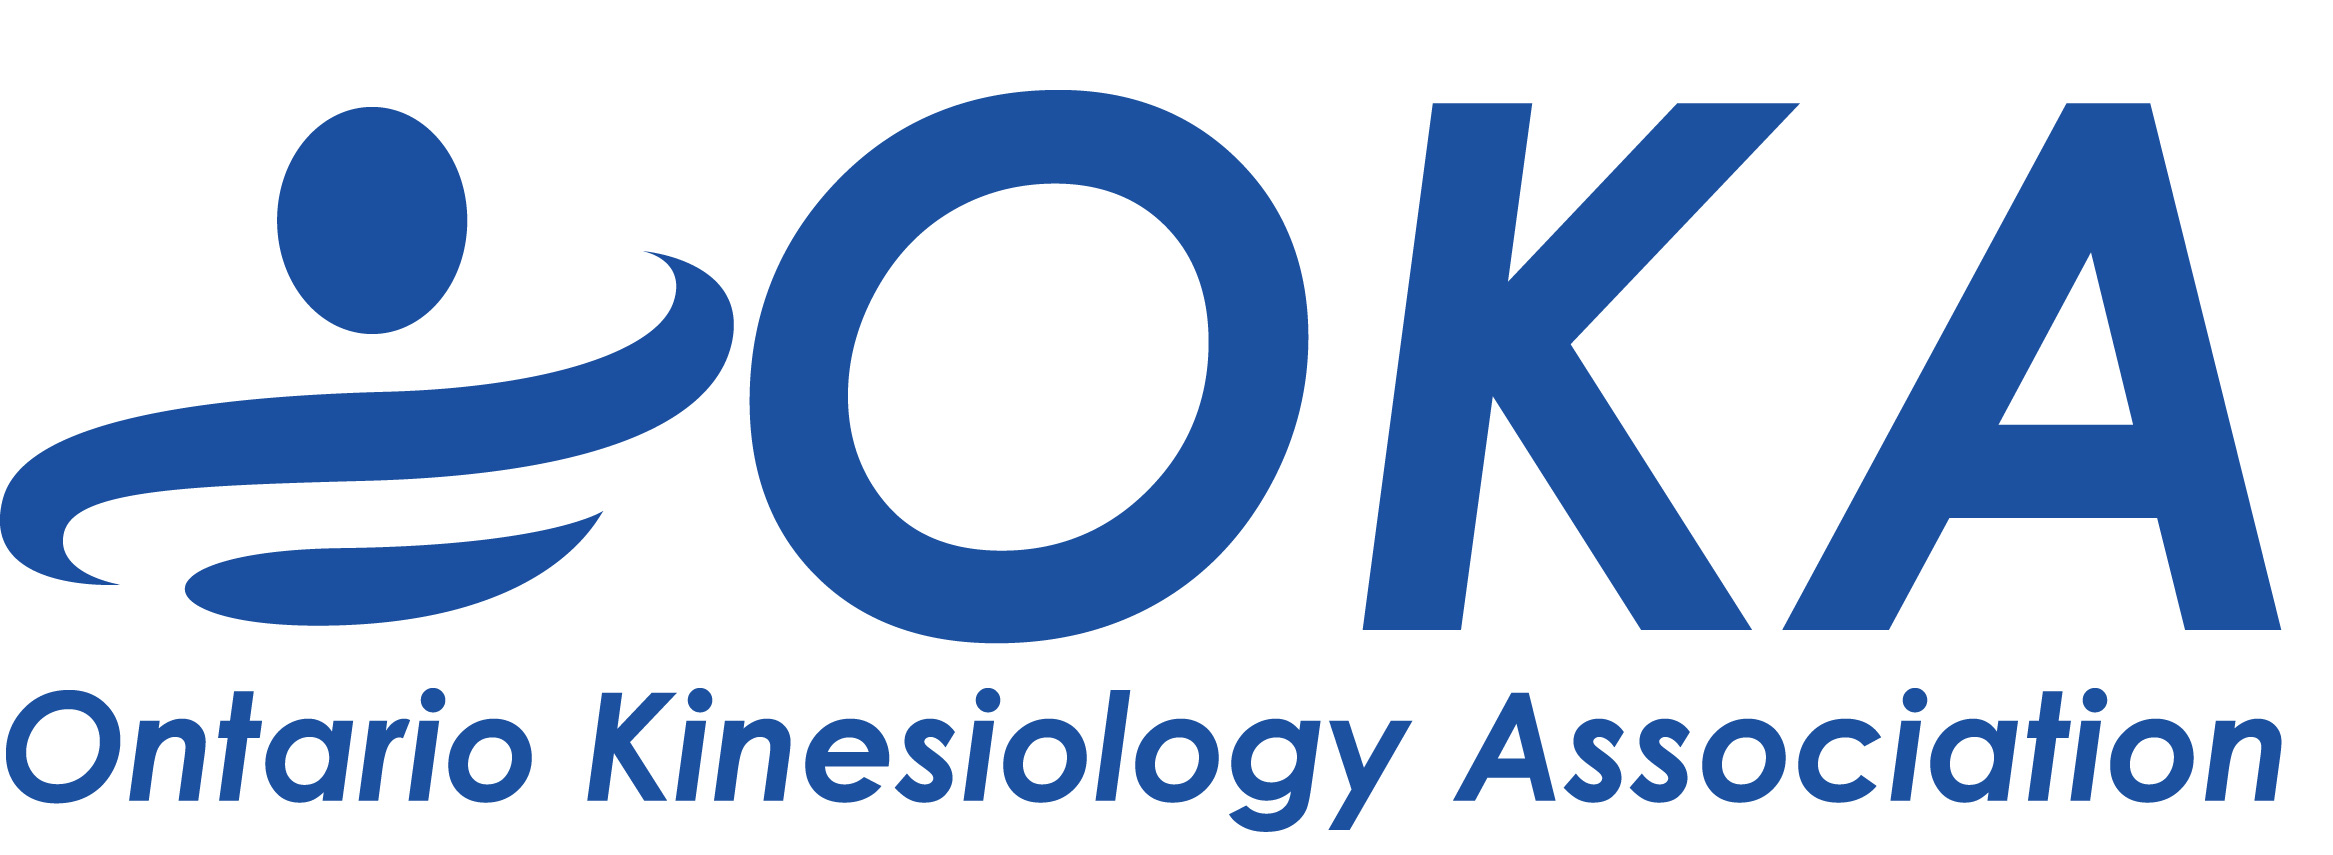 Ontario Kinesiology Association